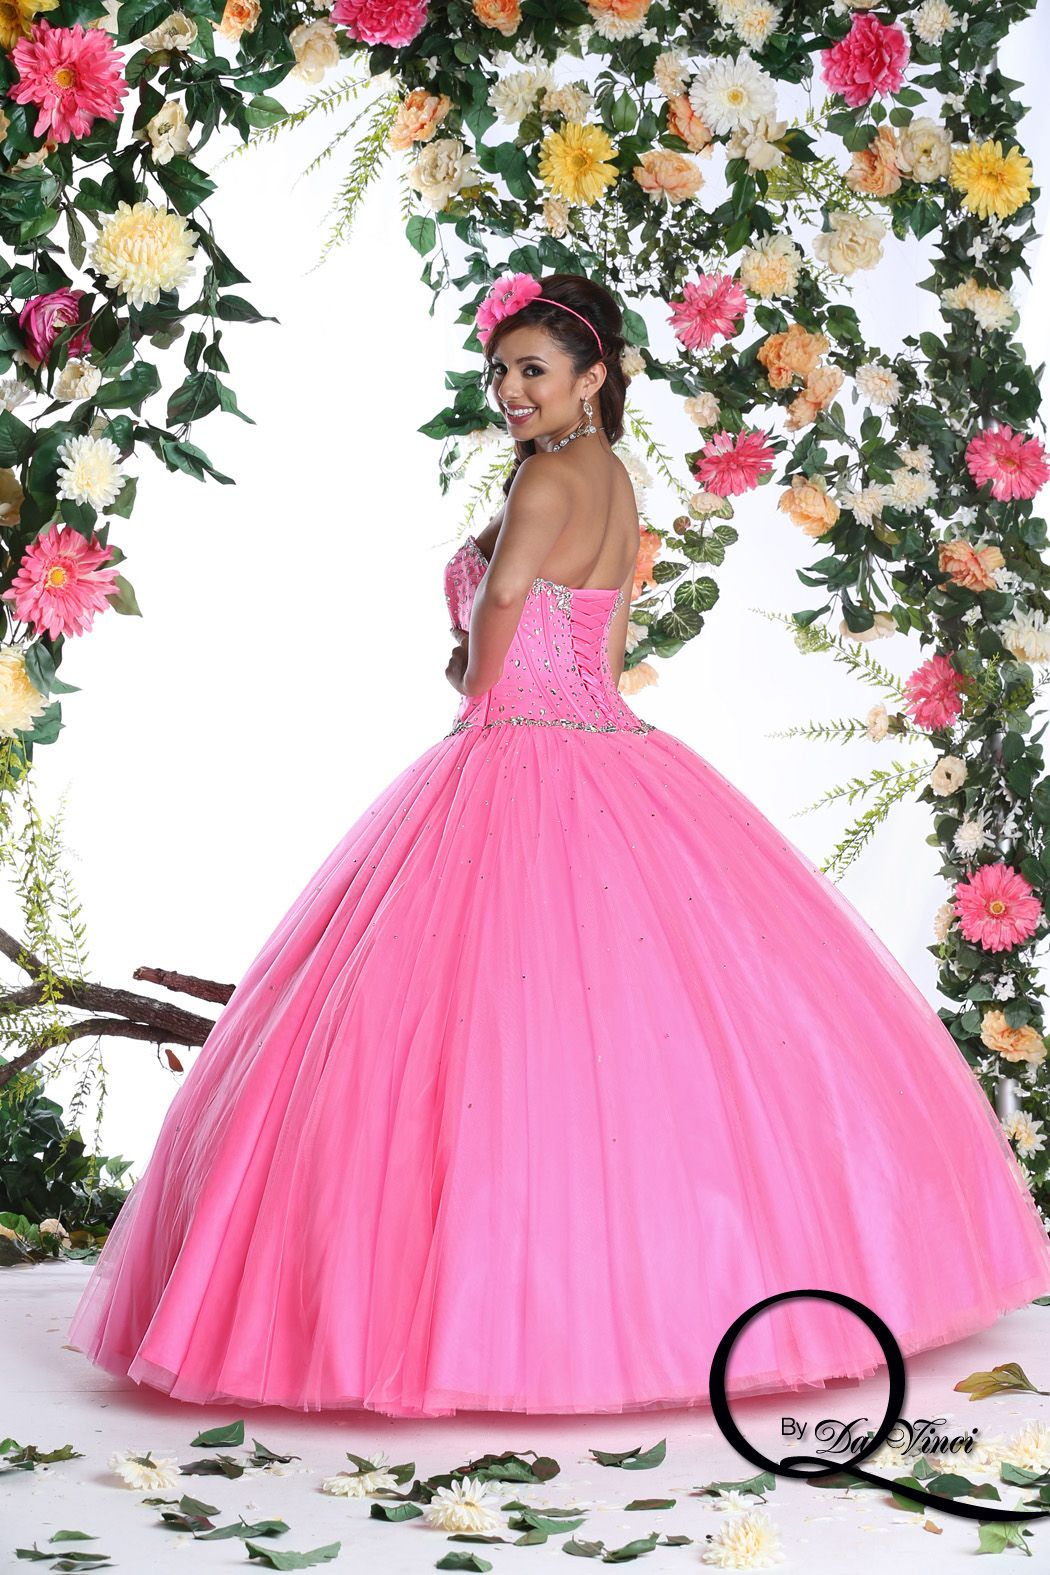 Gorgeous Q by Davinci style 80263 featuring hermoso tulle in colors ...